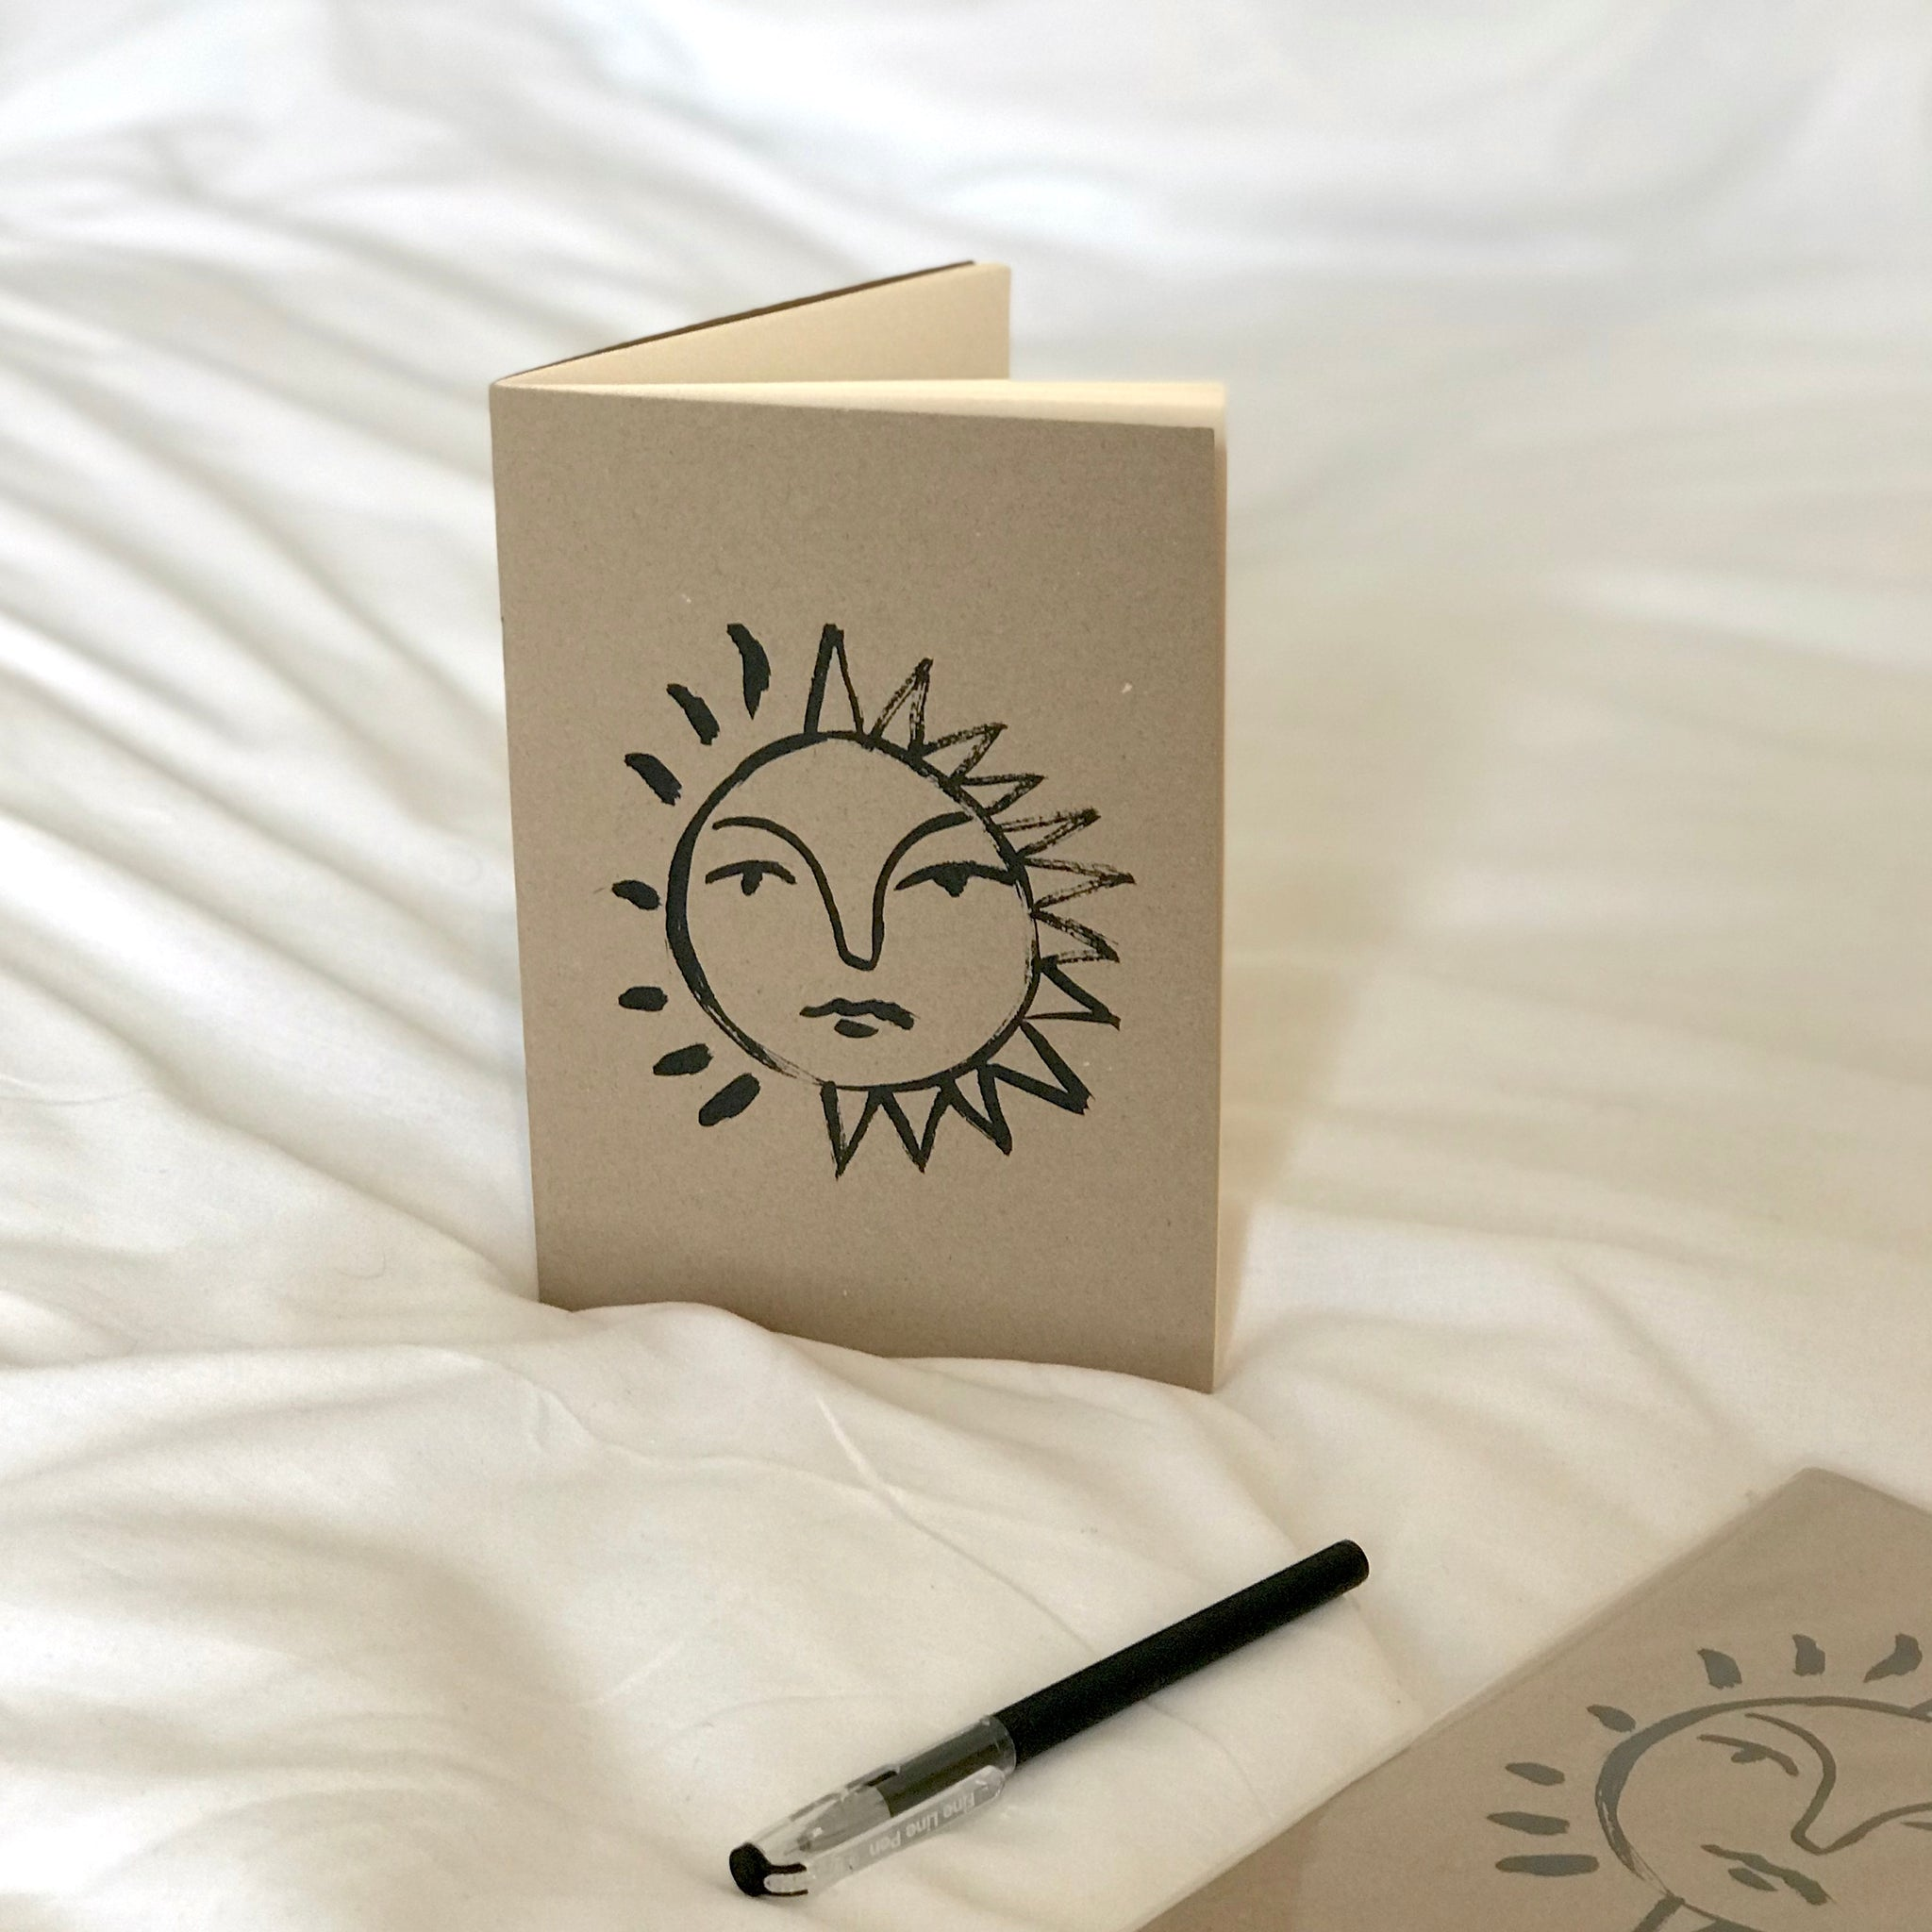 'Sunlight' Notebook - By James Wilson